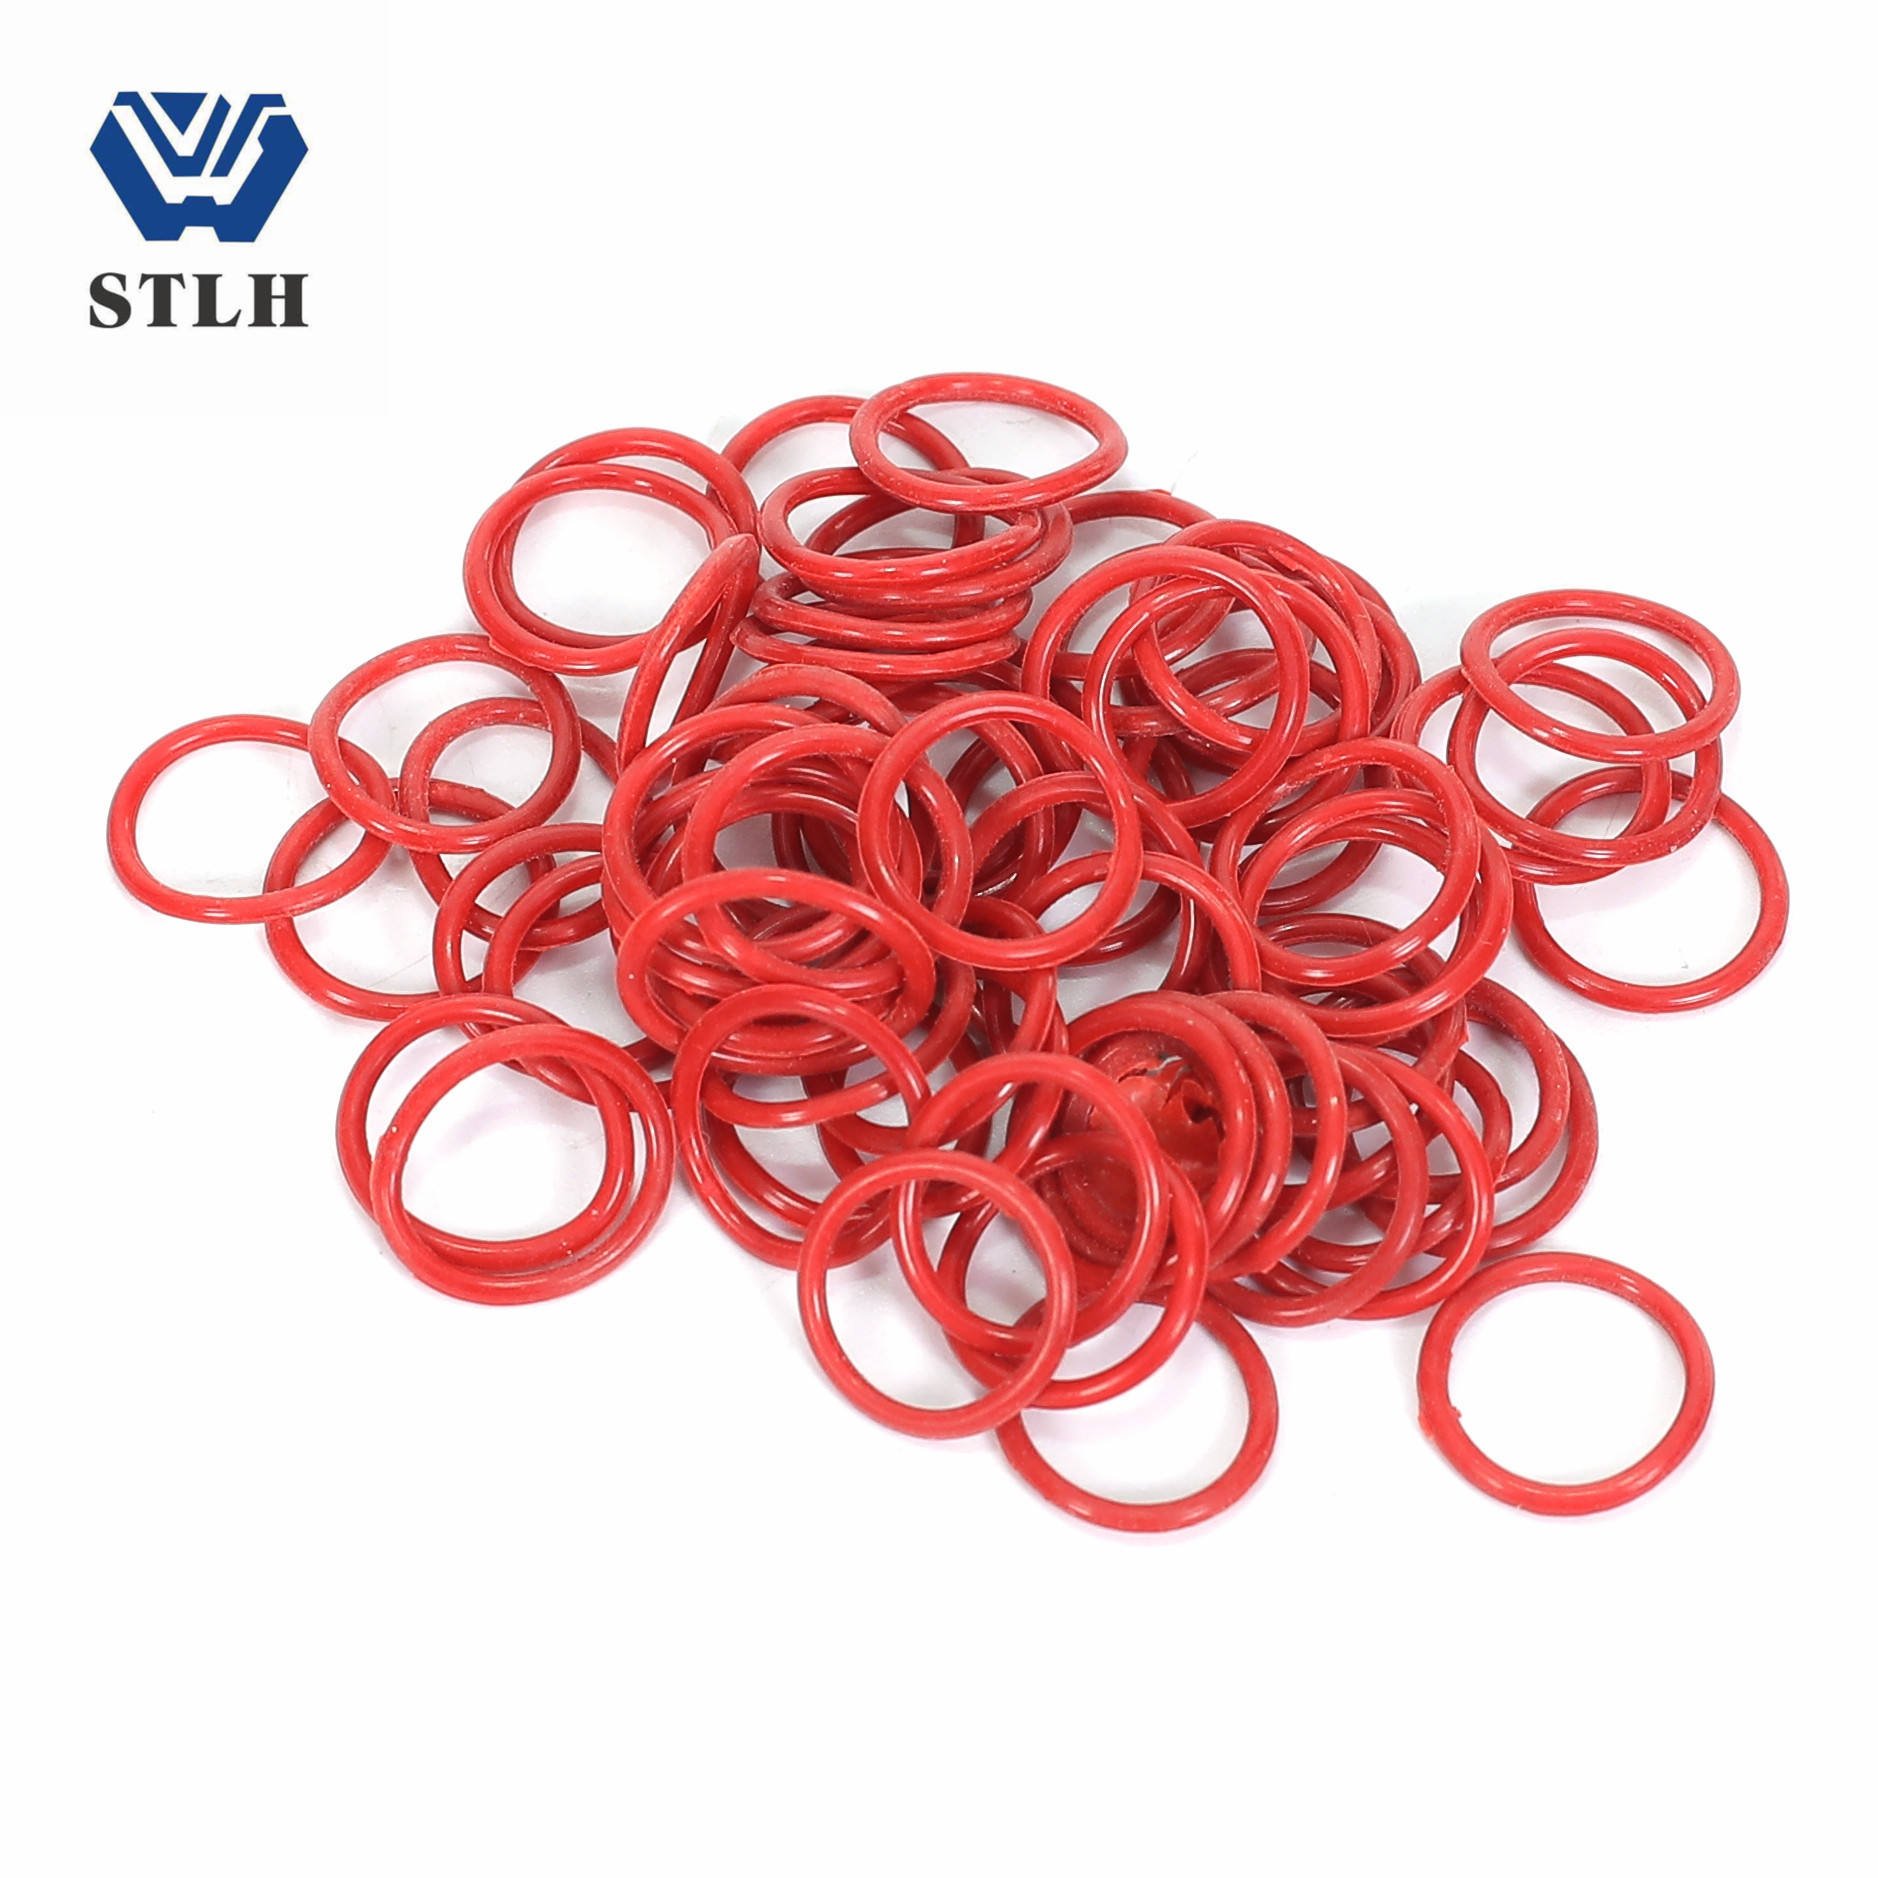 Rubber FKM/ NBR silicon Seal Rings O ring PU/TPU parts with varisized